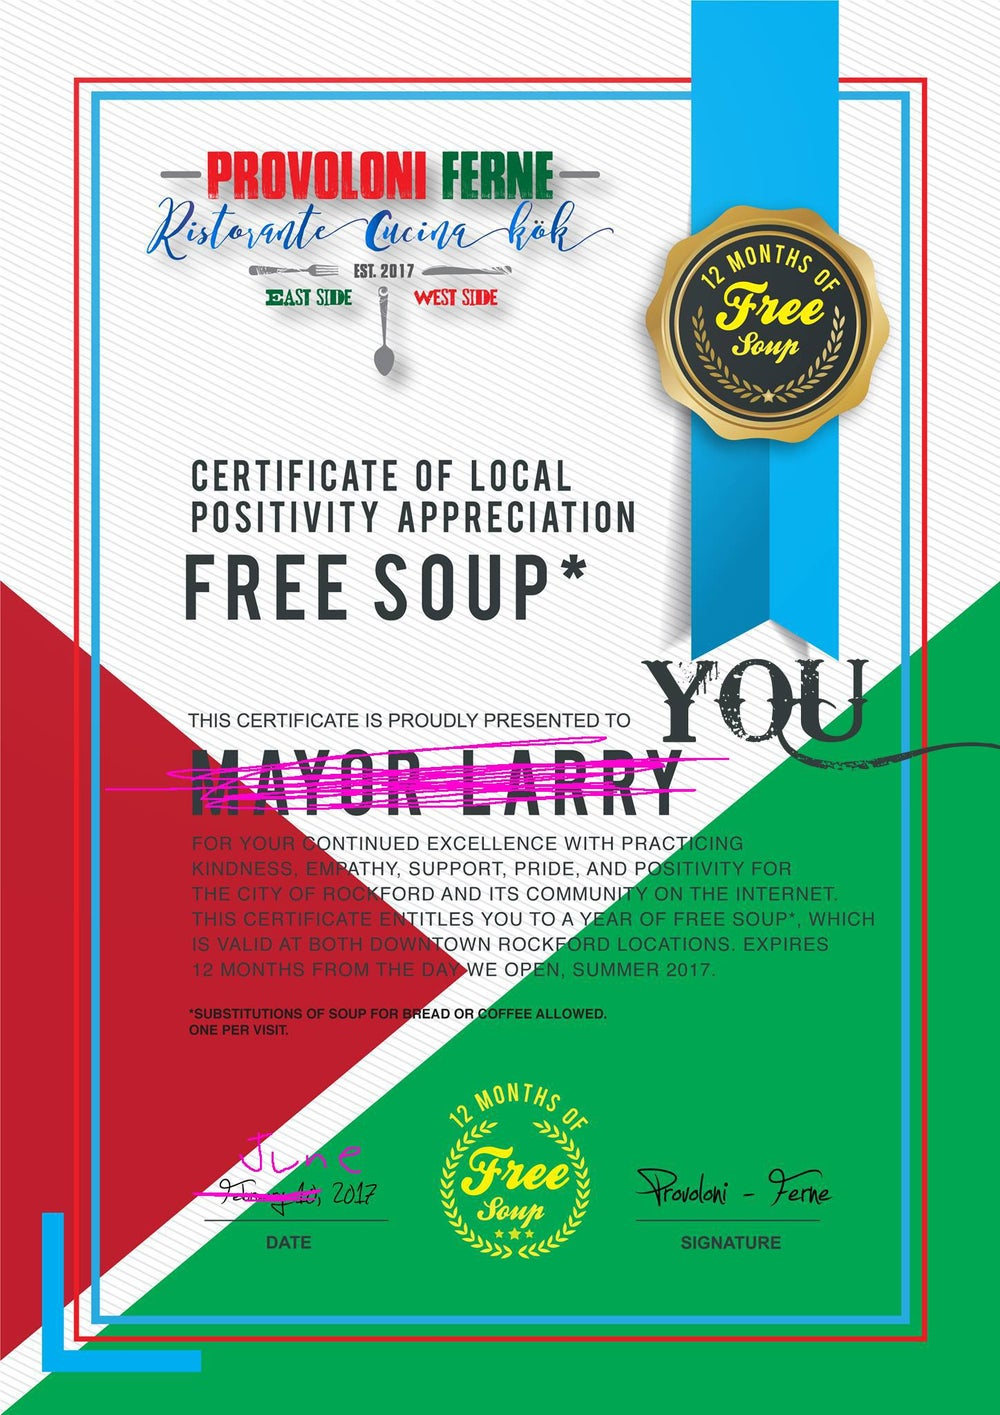 Image of Free Soup Certificate!